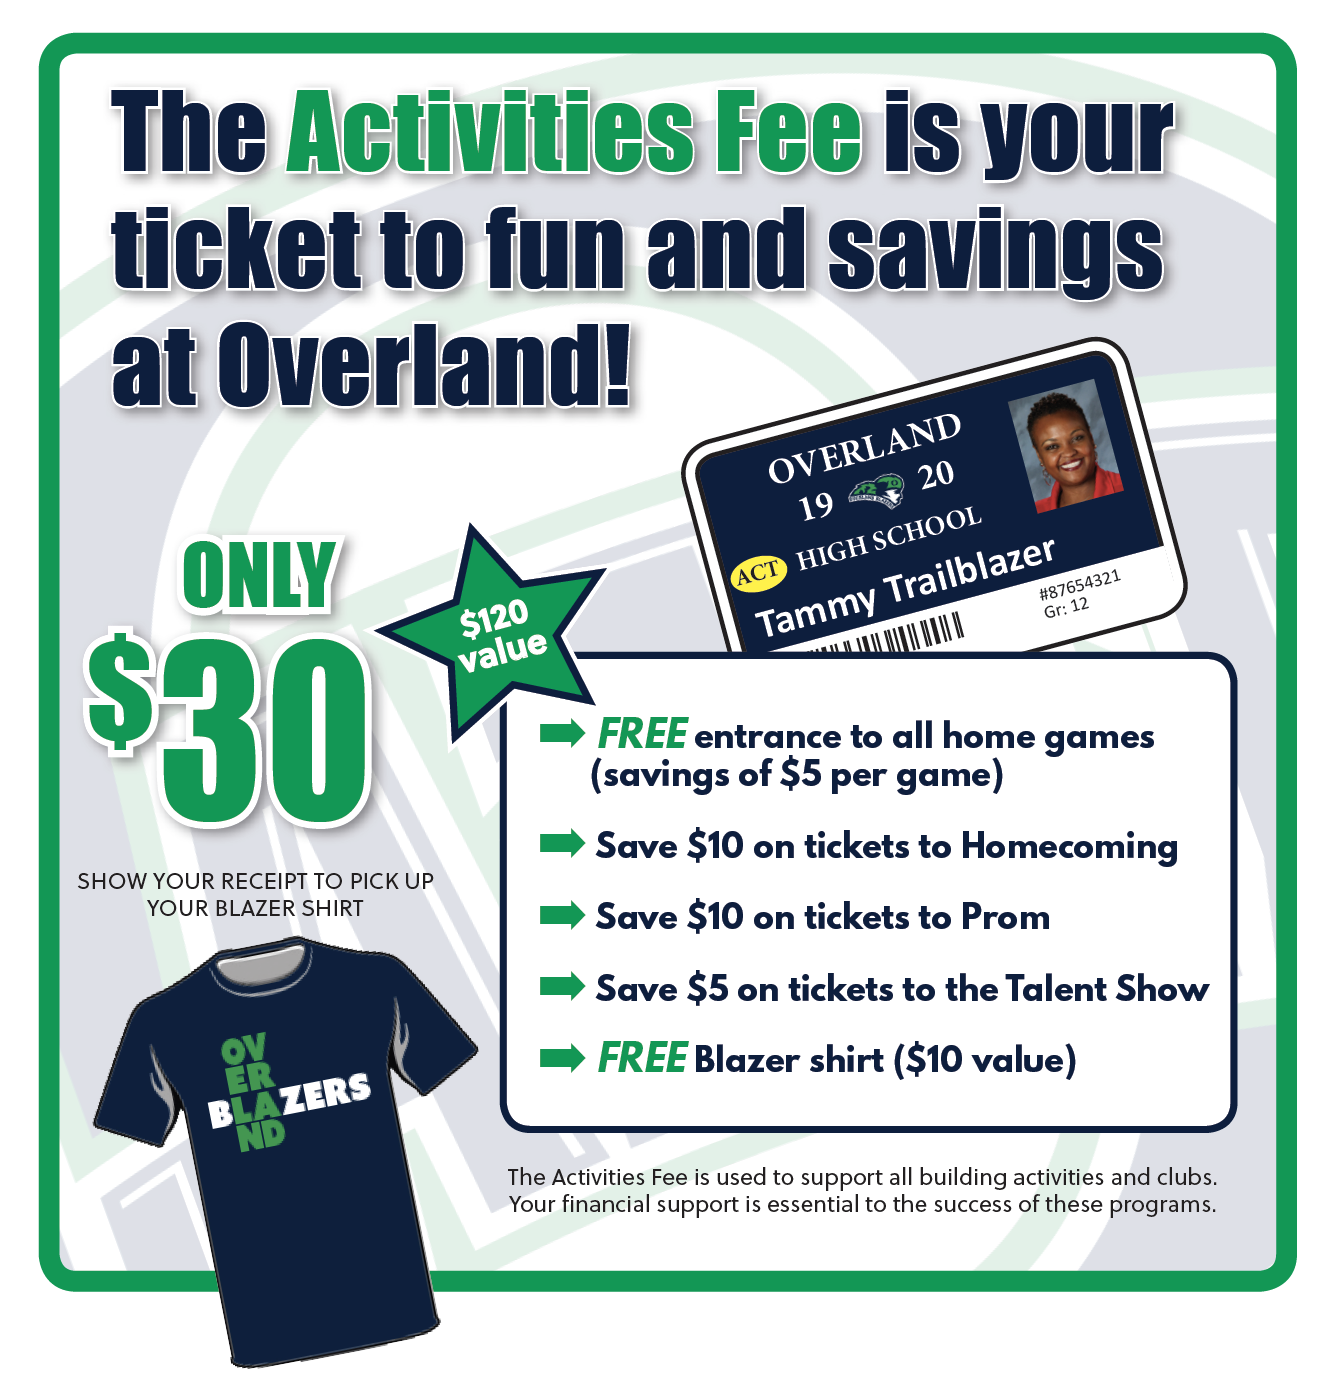 picture of Activities Fee flyer